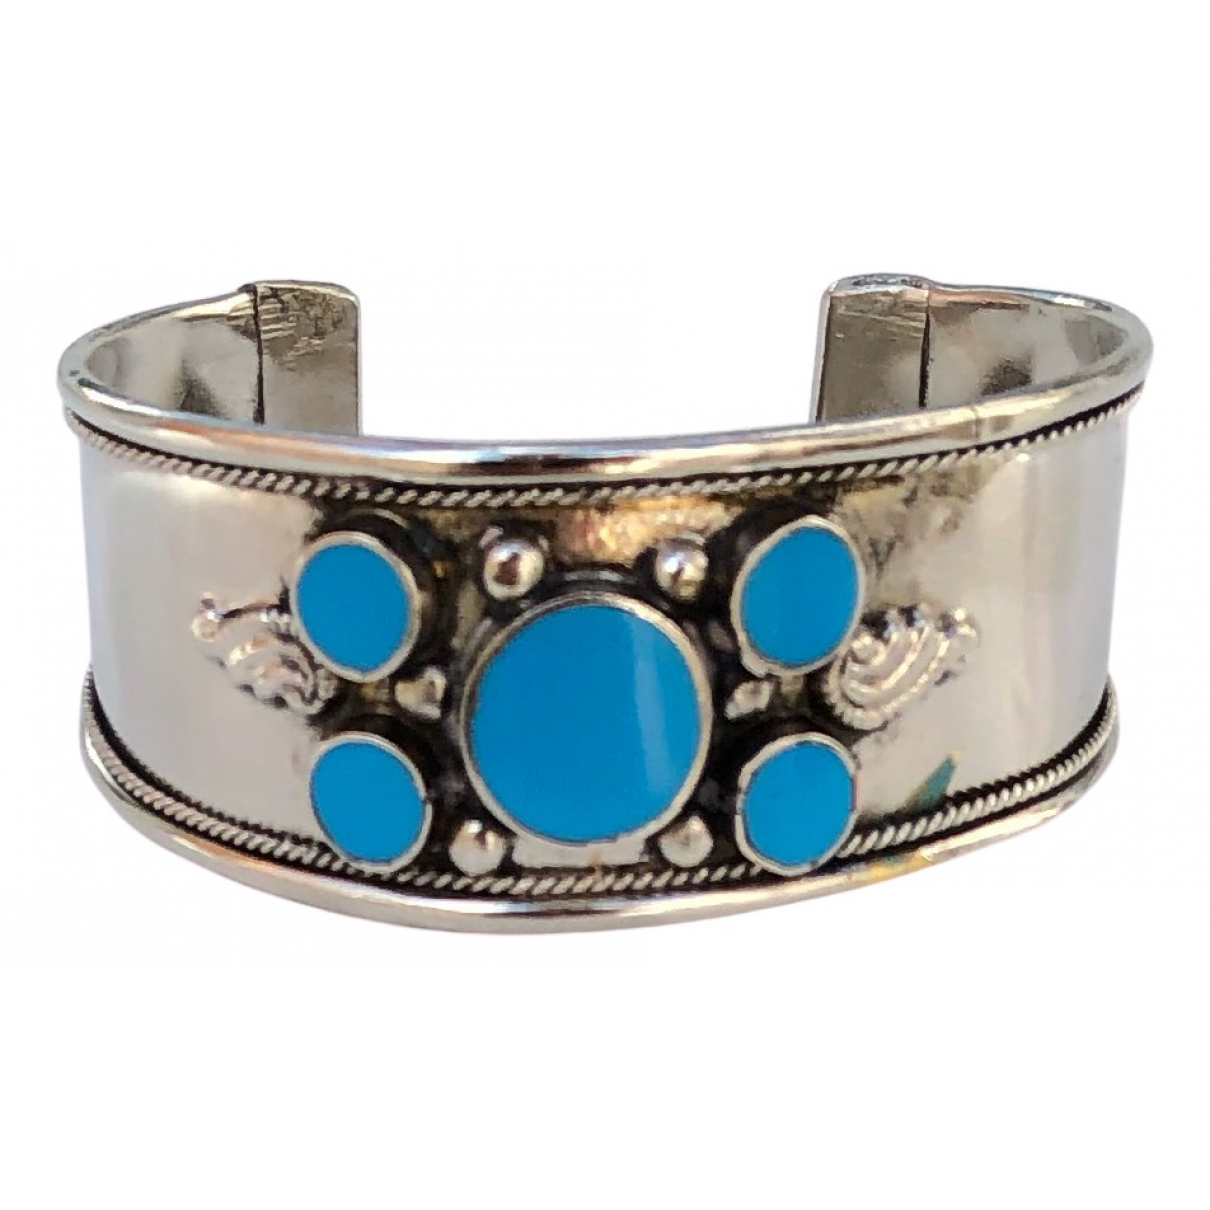 Non Signe / Unsigned Turquoises Armband in  Tuerkis Silber